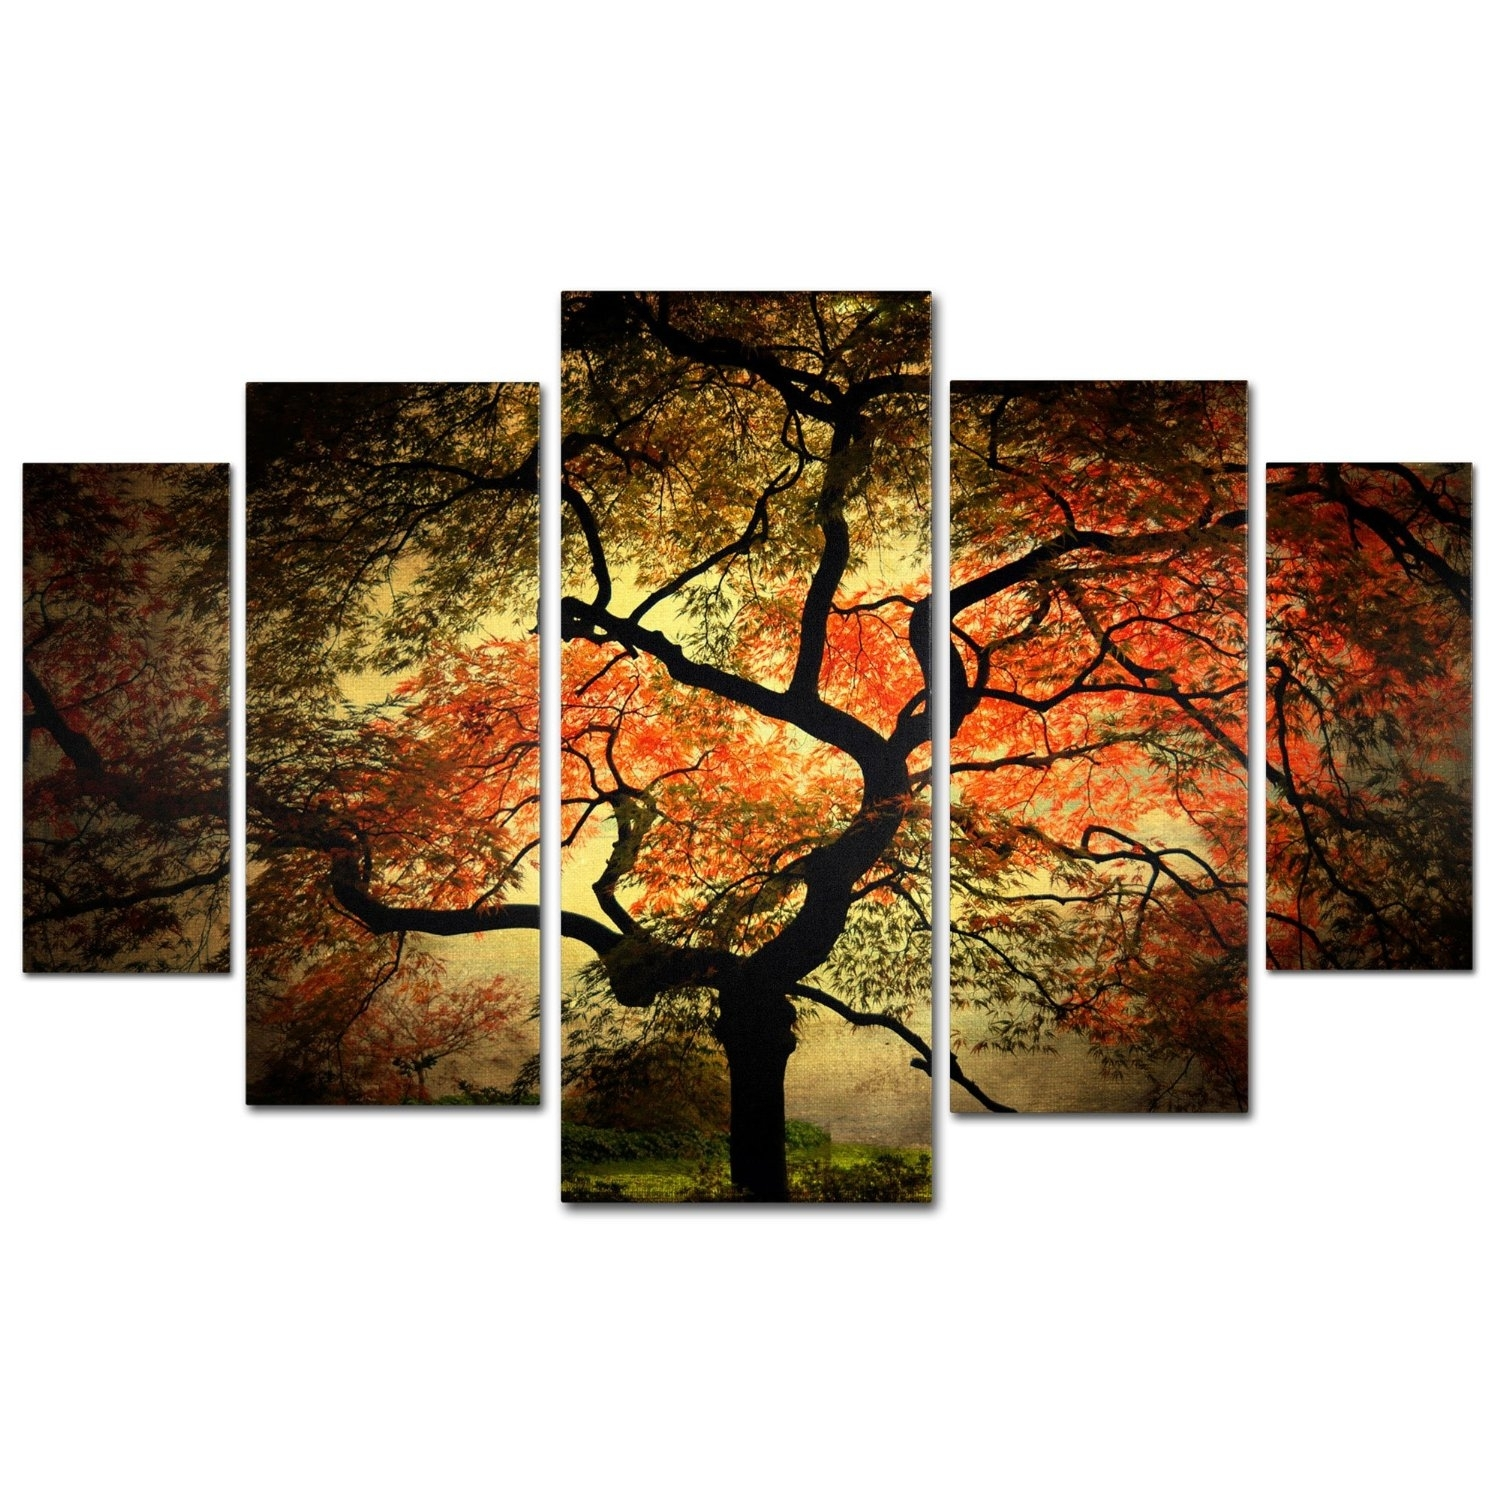 Wall Art Designs: Multi Panel Wall Art Pair Large Multi Panel Within Best And Newest Rustic Canvas Wall Art (View 13 of 15)